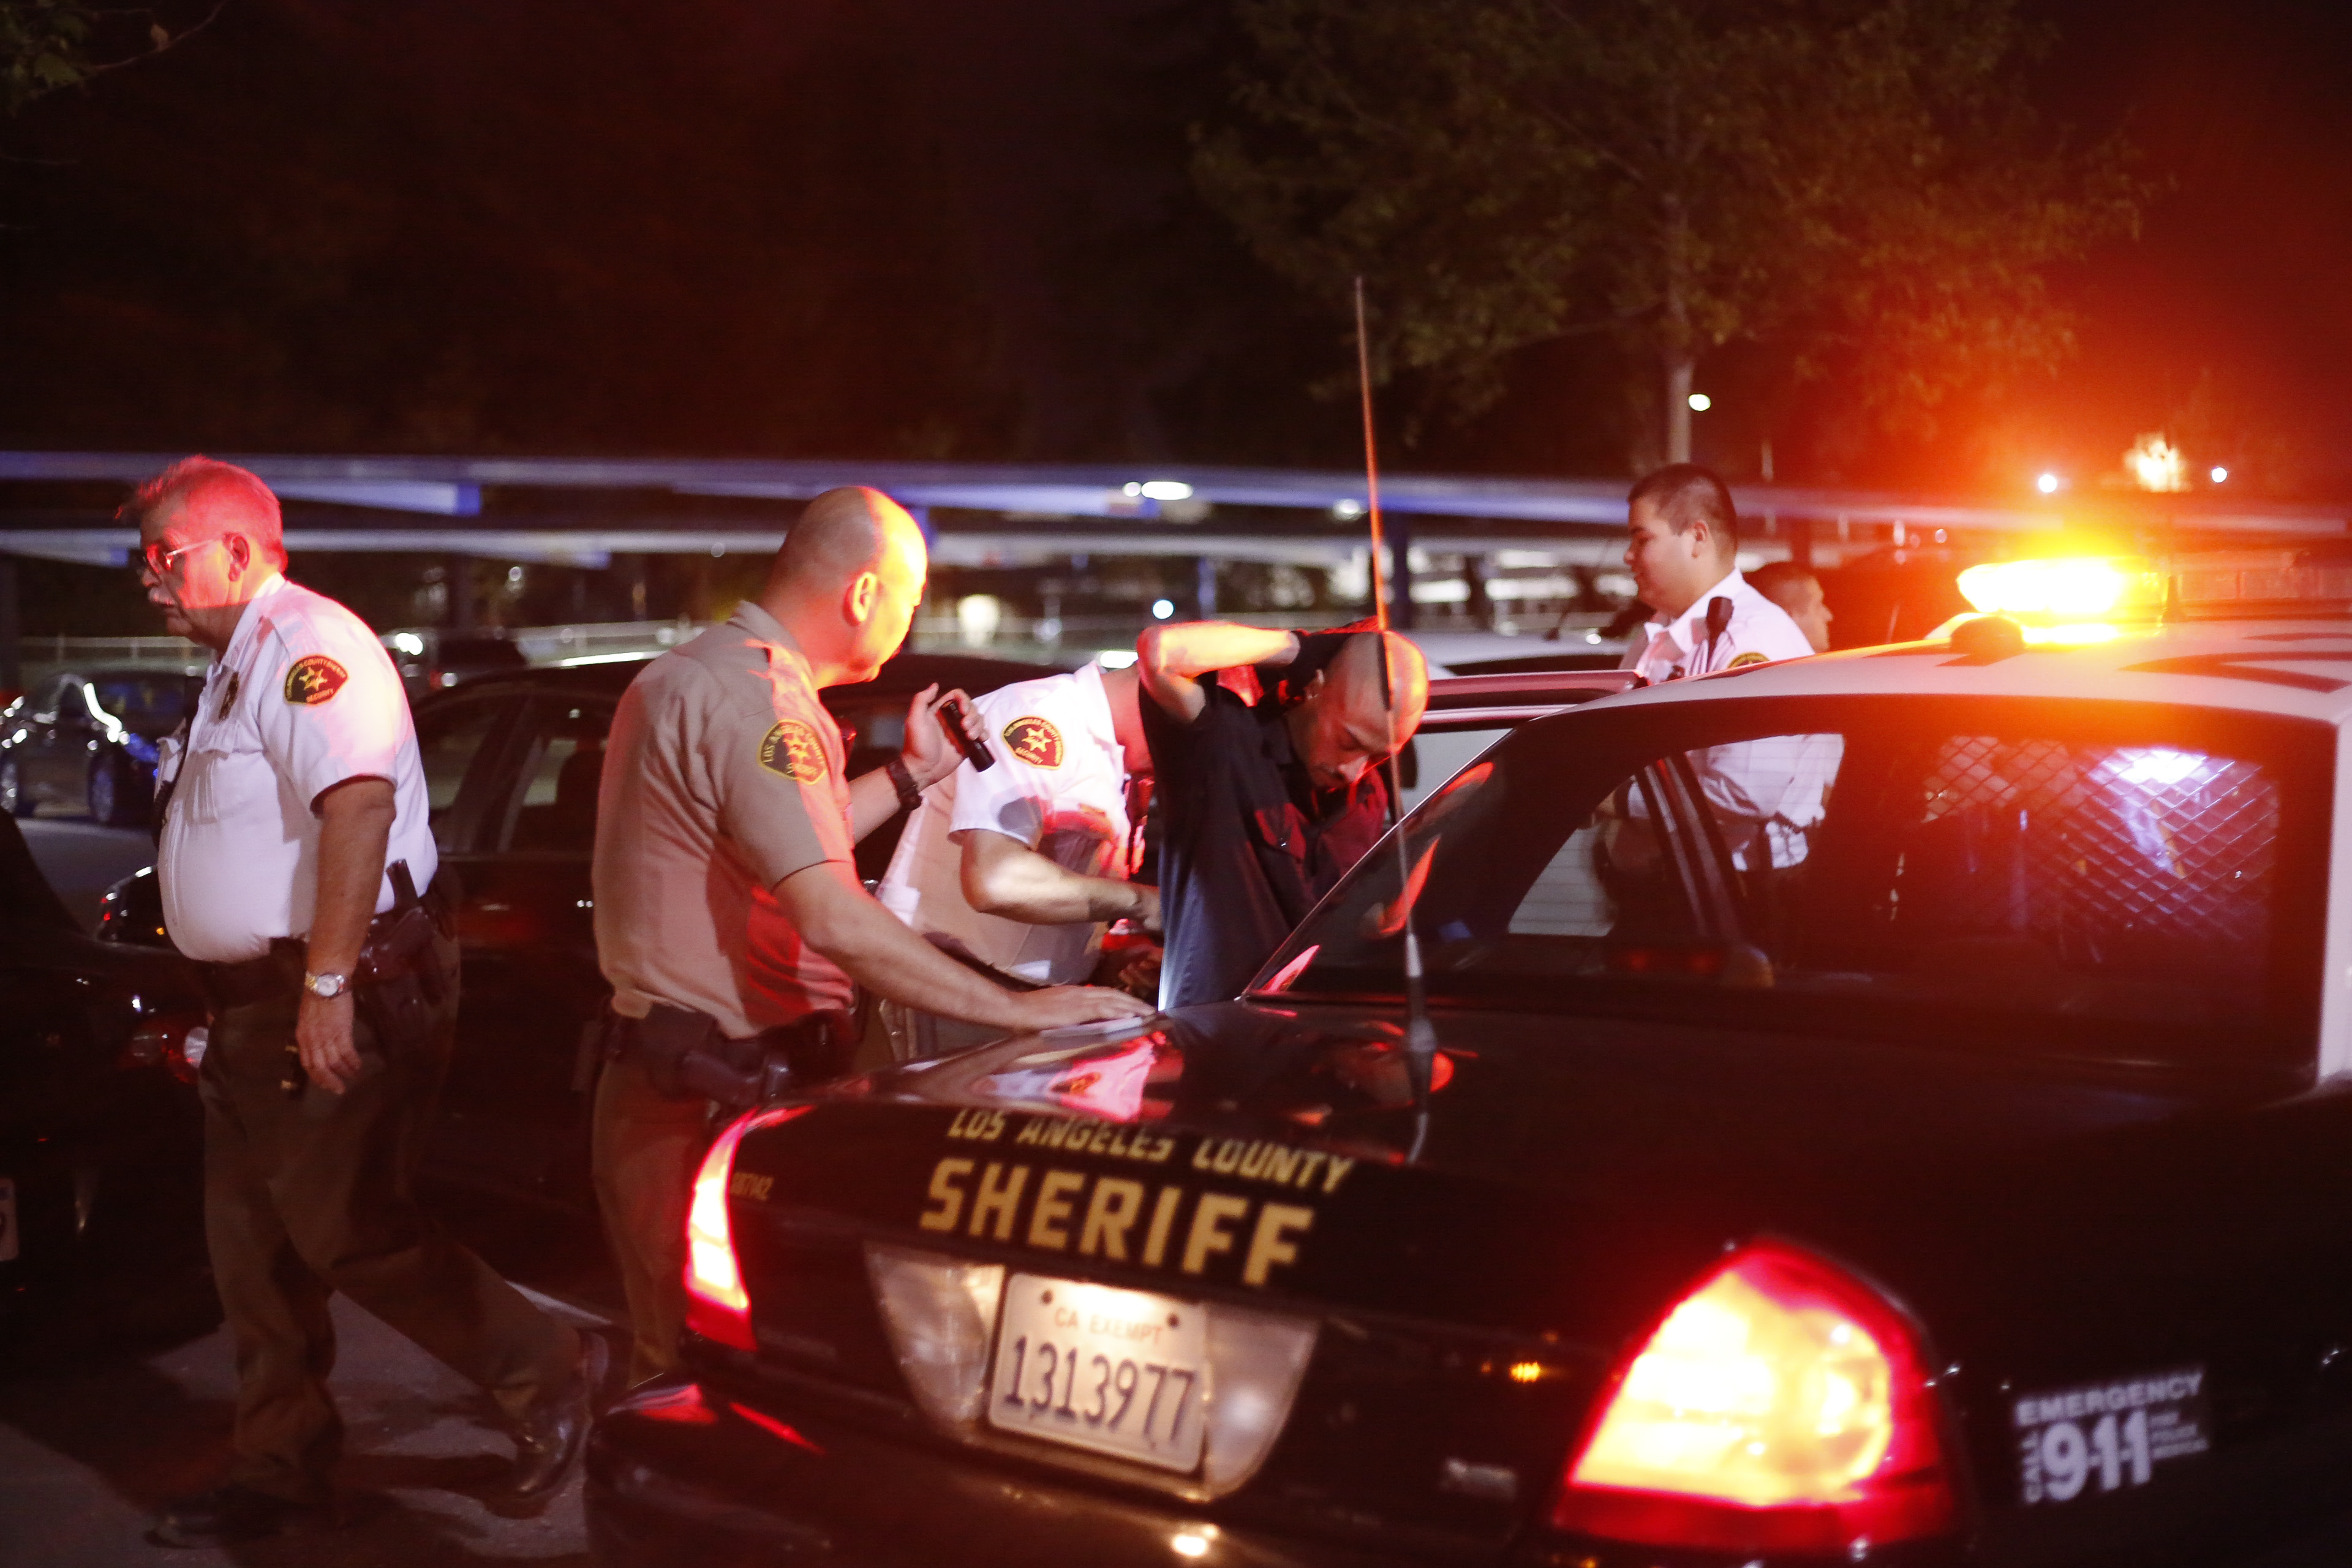 Man detained in Parking Lot 1